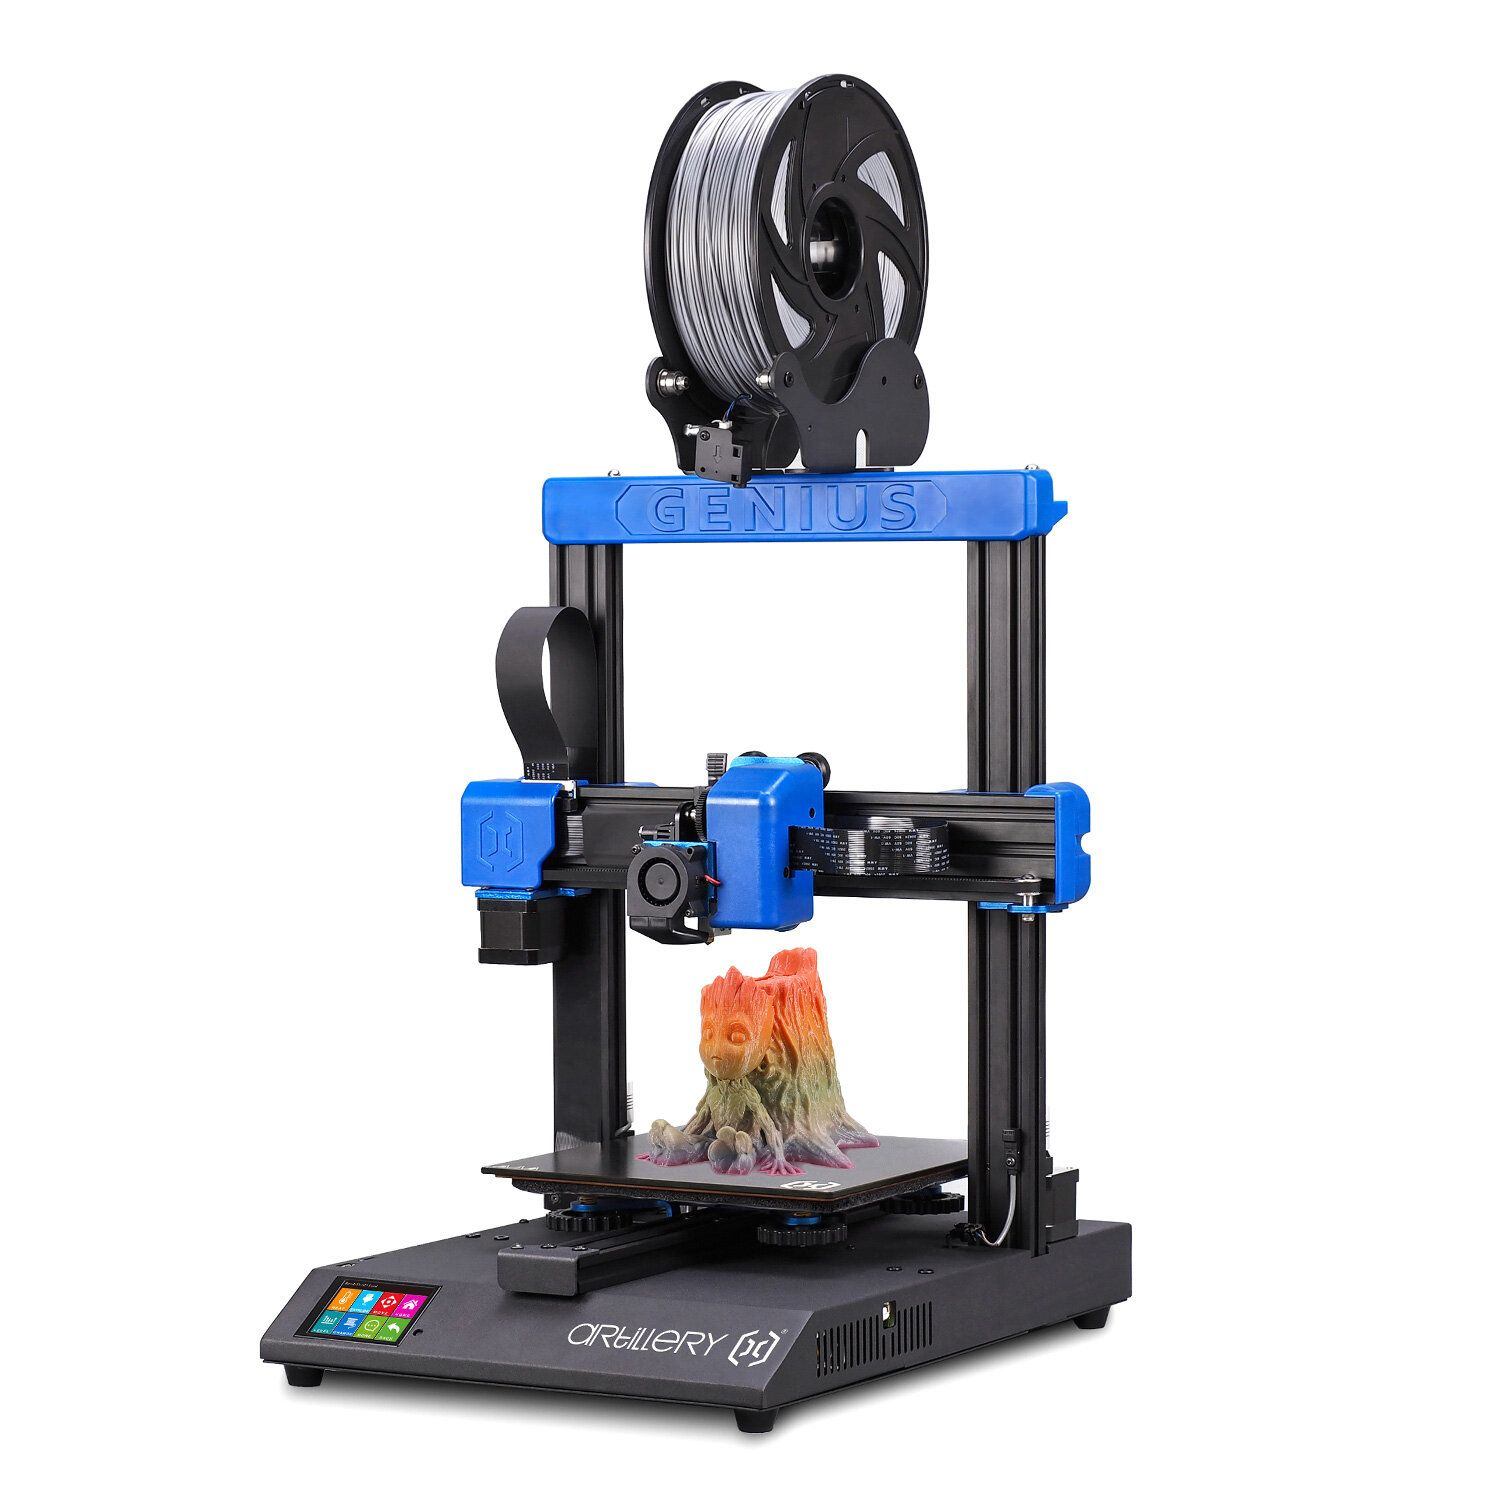 Artillery® Genius DIY 3D Printer Kit 220*220*250mm Print Size with Ultra Quiet Stepper Motor TFT Touch Screen Support Filament Runout Detection&Power Failure Function